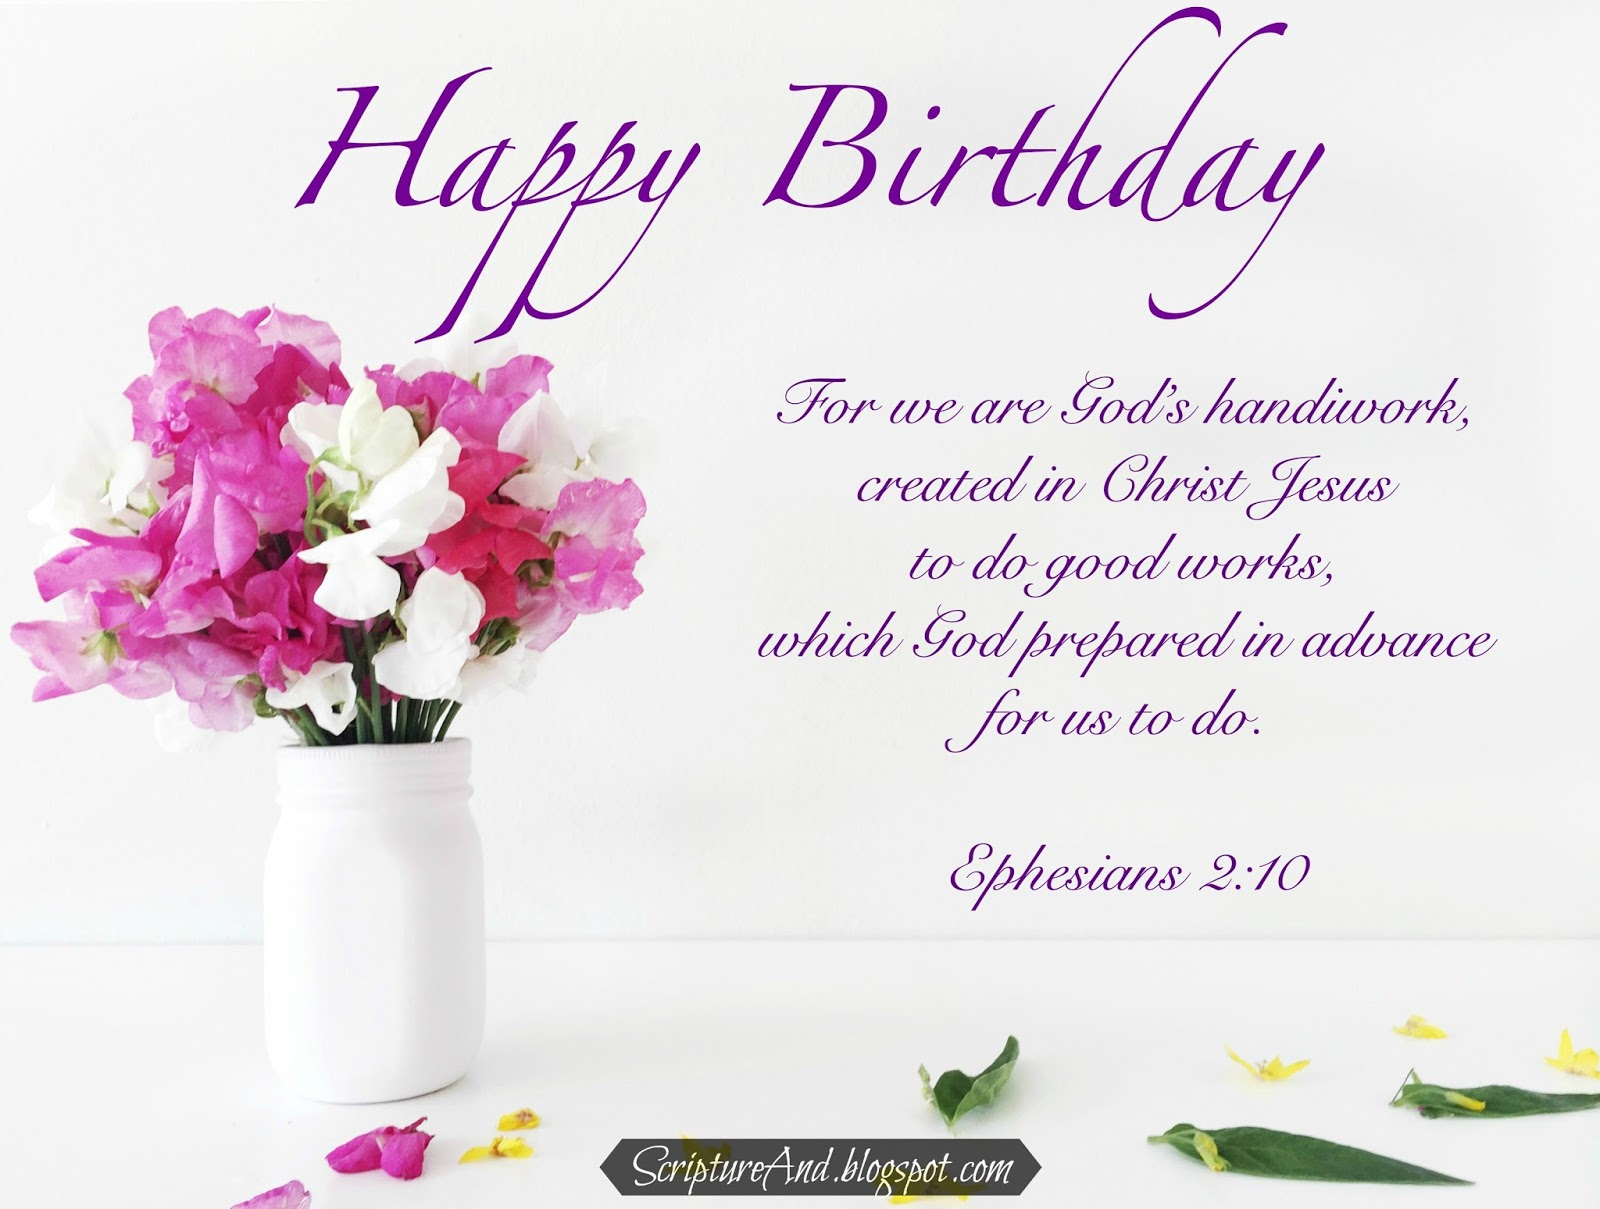 Scripture and free birthday images with bible verses happy birthday with flowers in a vase and ephesians 210 from scriptureandspot izmirmasajfo